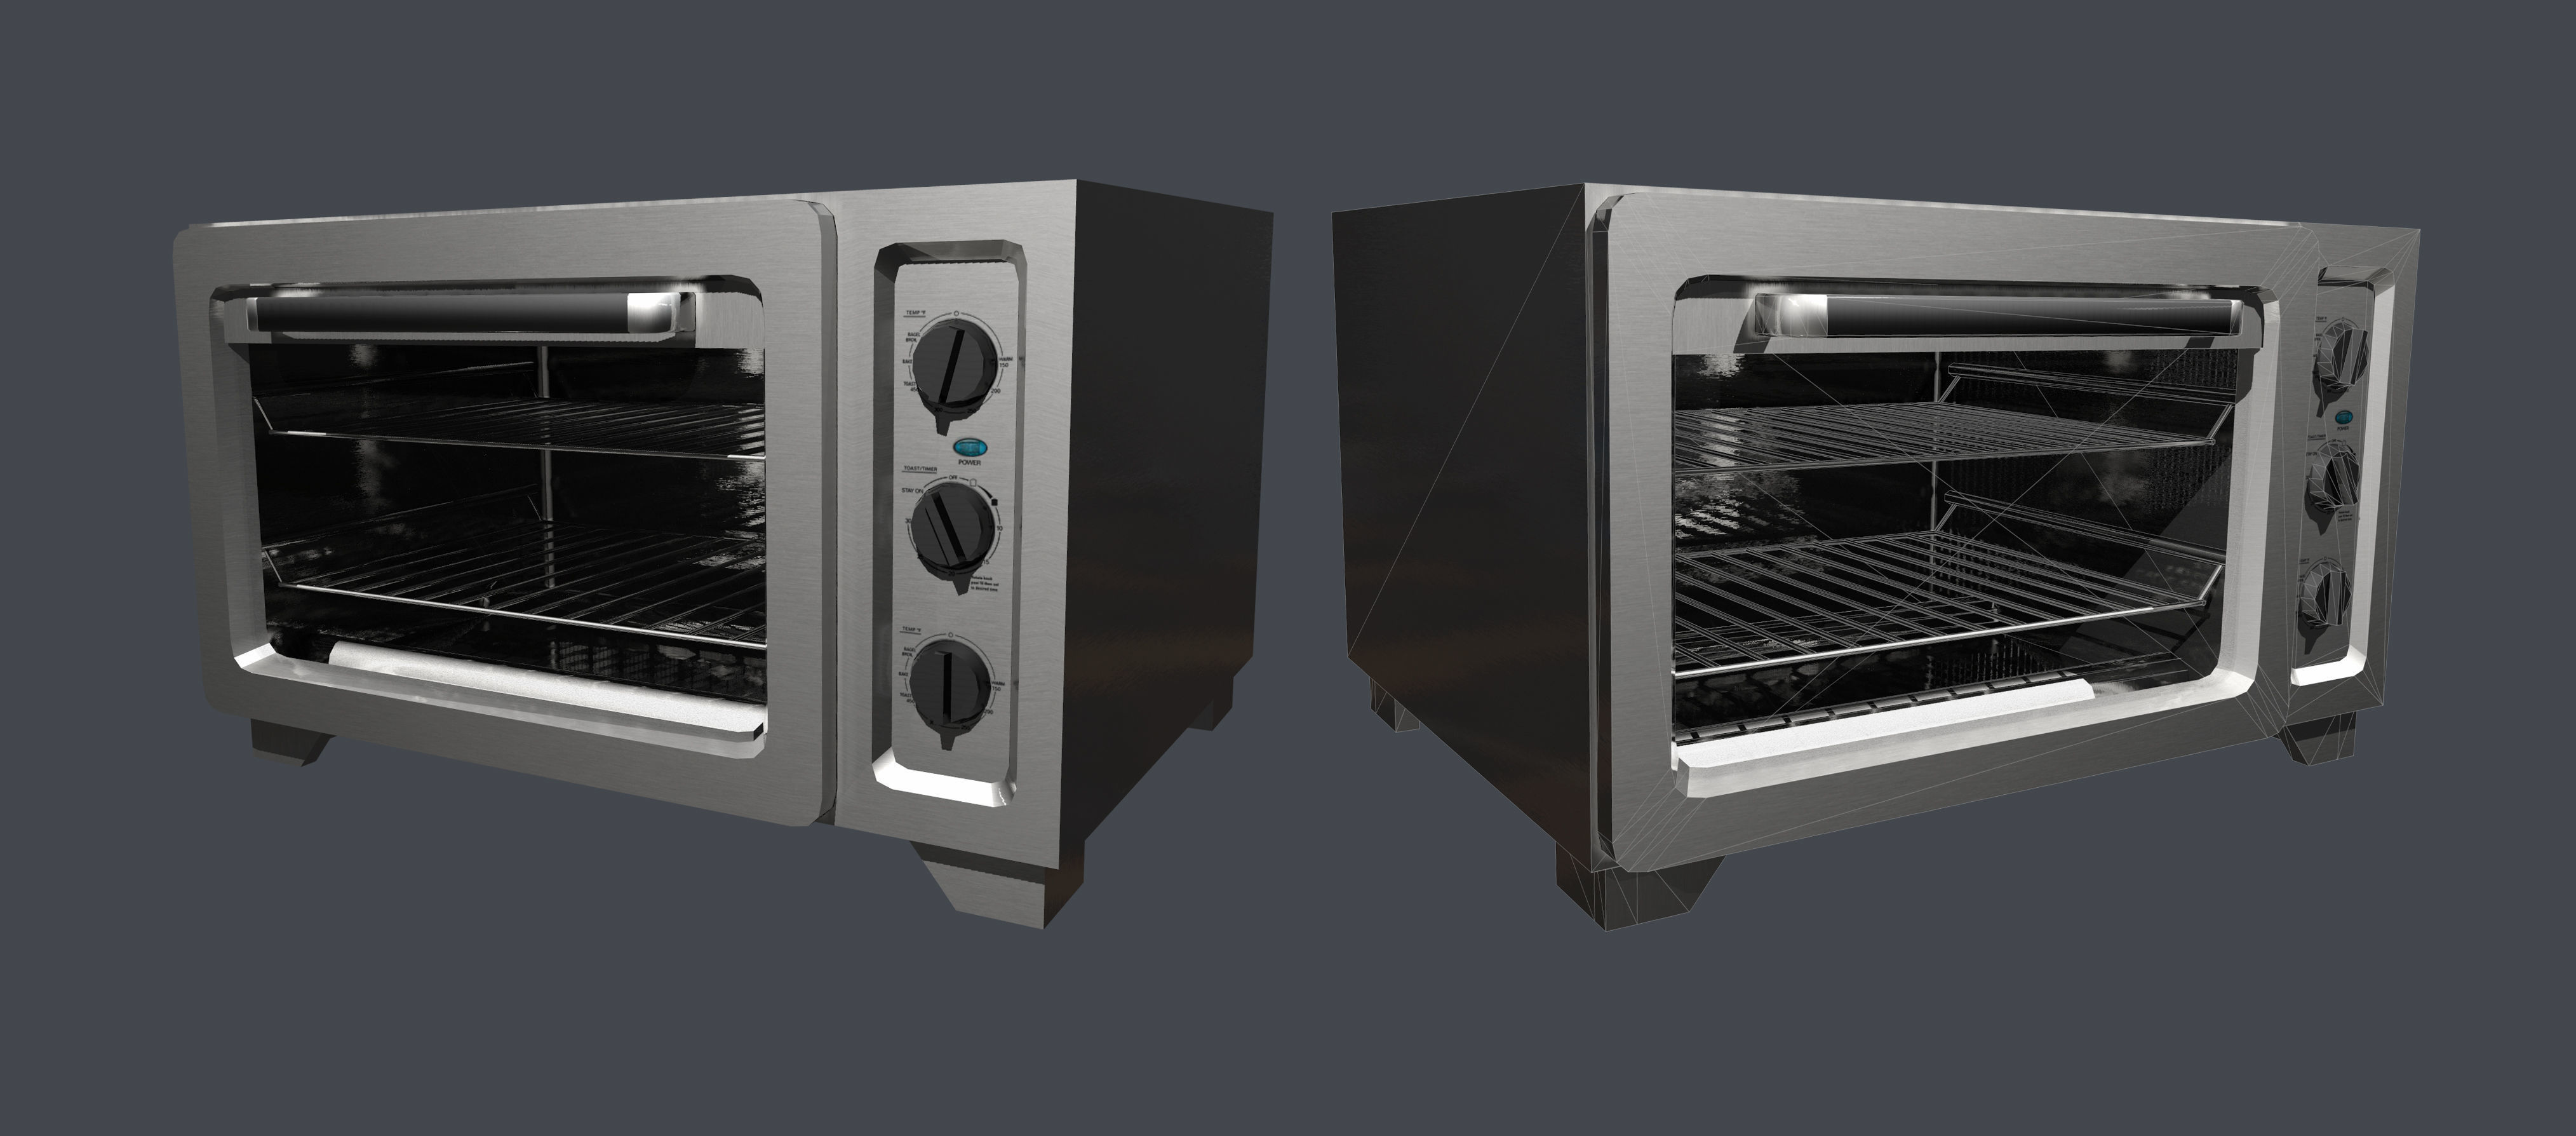 Toaster Oven Kitchenware Low Poly Game Ready